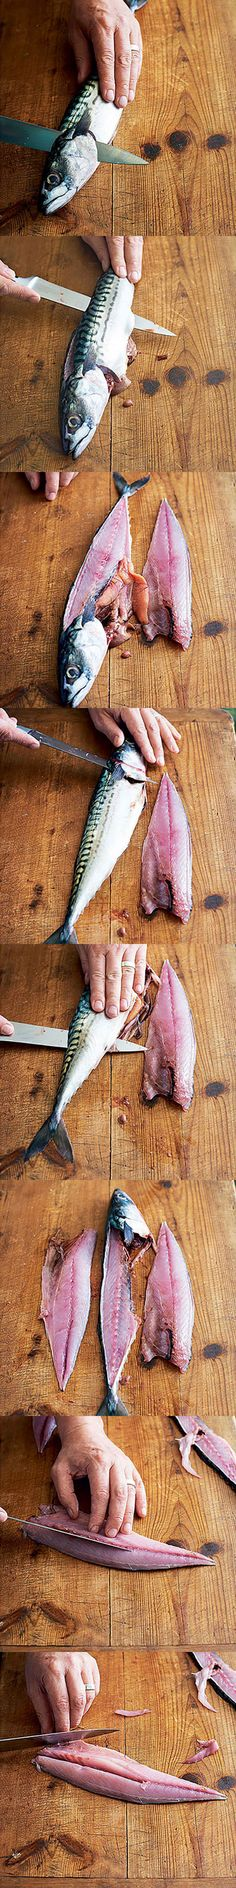 How to fillet round fish. Learn the perfect technique for removing round fish fillets, i.e. mackerel, off the bone with this step by step guide.